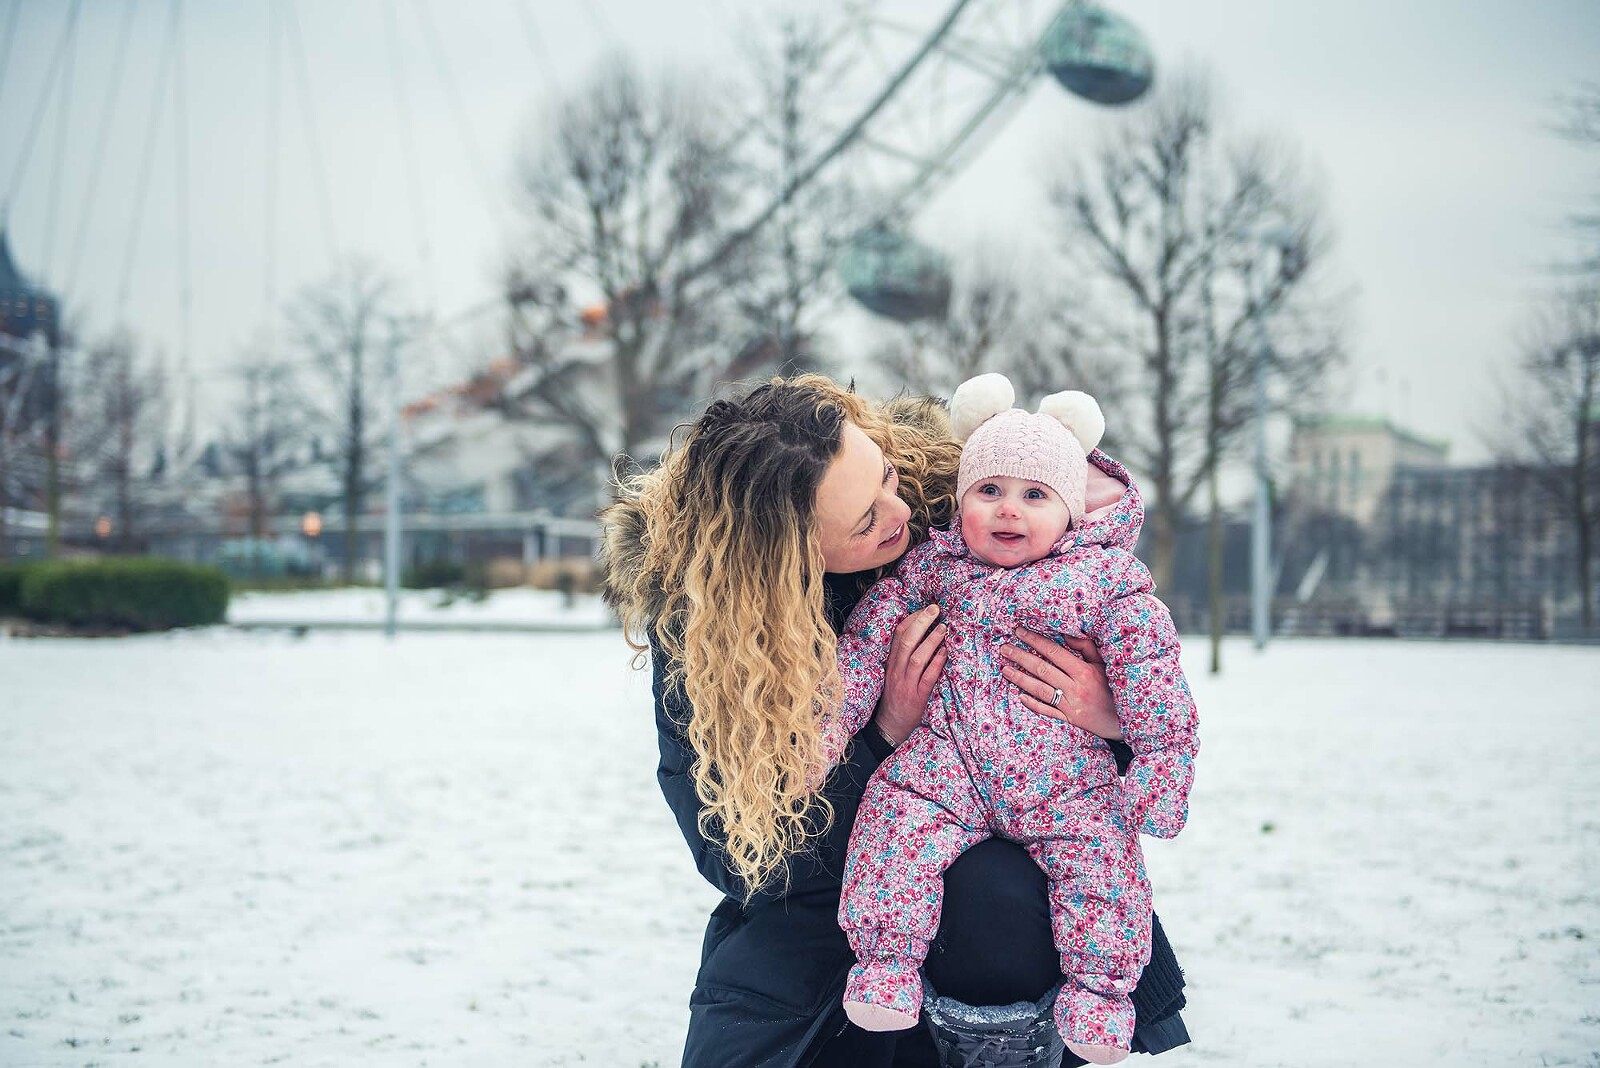 Baby seeing her first snow at Southbank London photo shoot